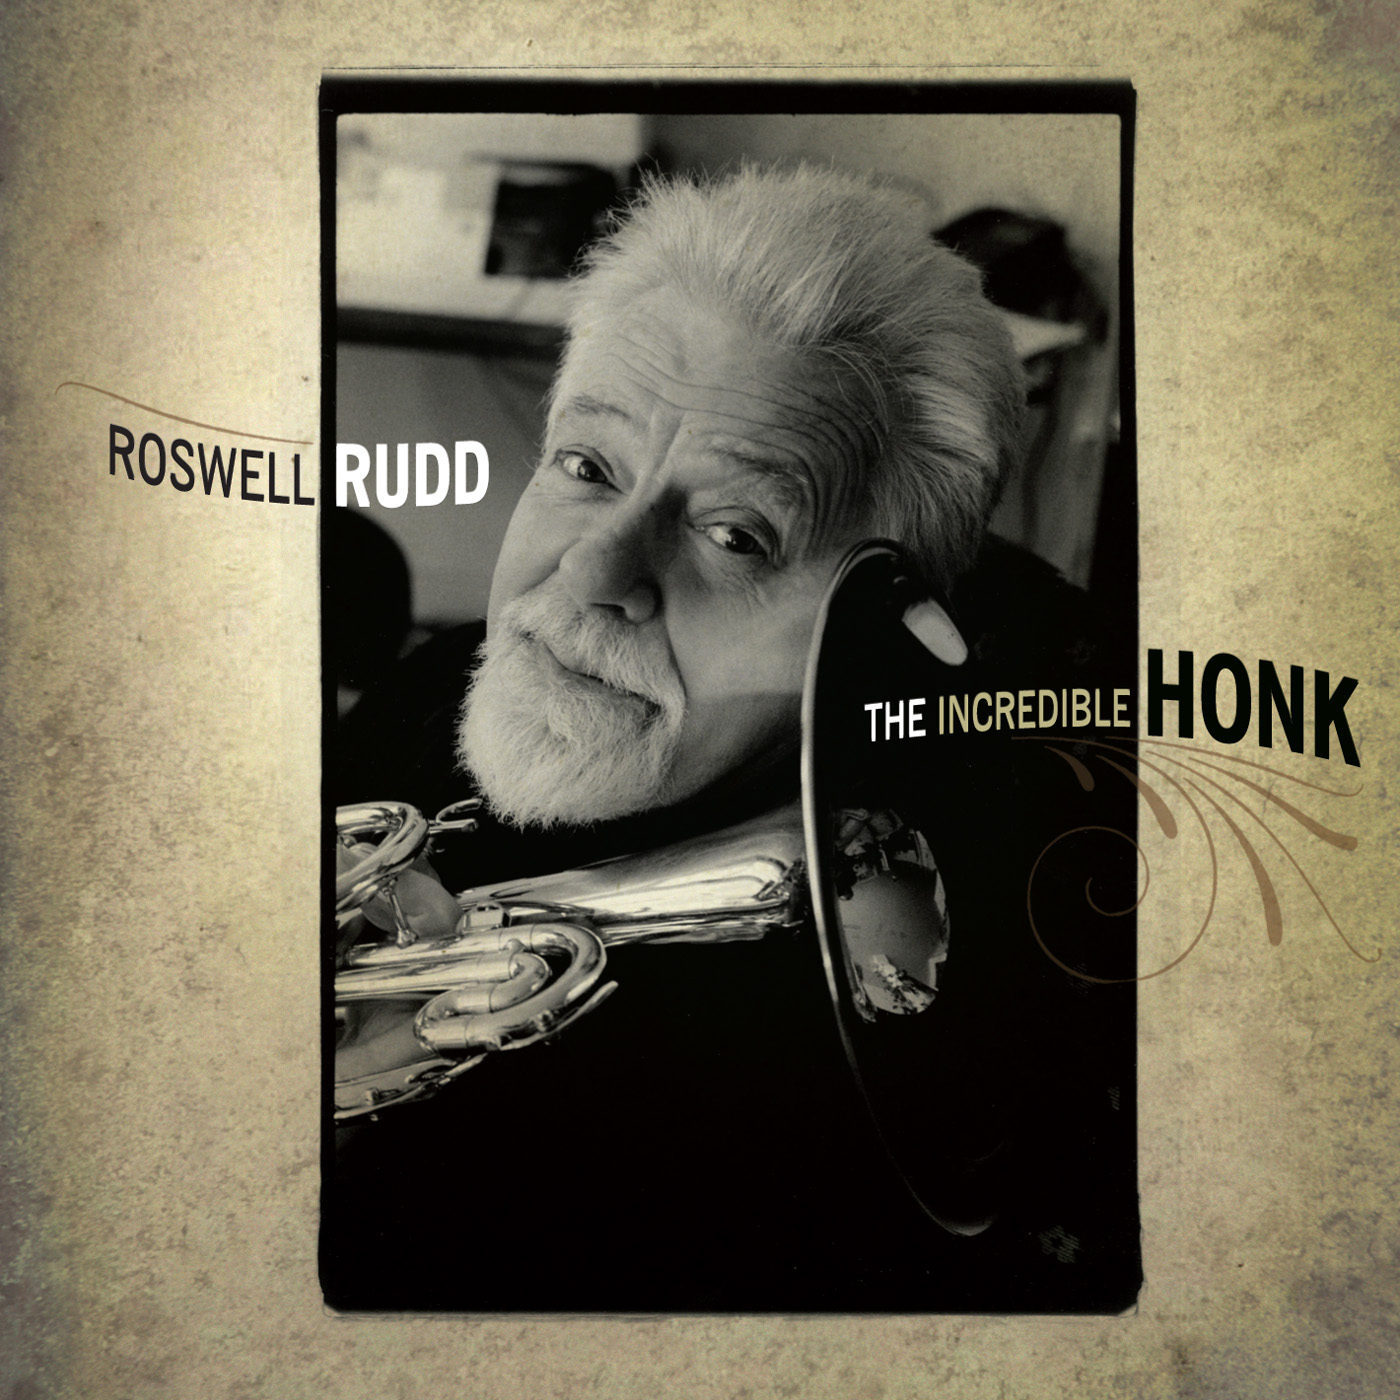 The Incredible Honk by Roswell Rudd cover